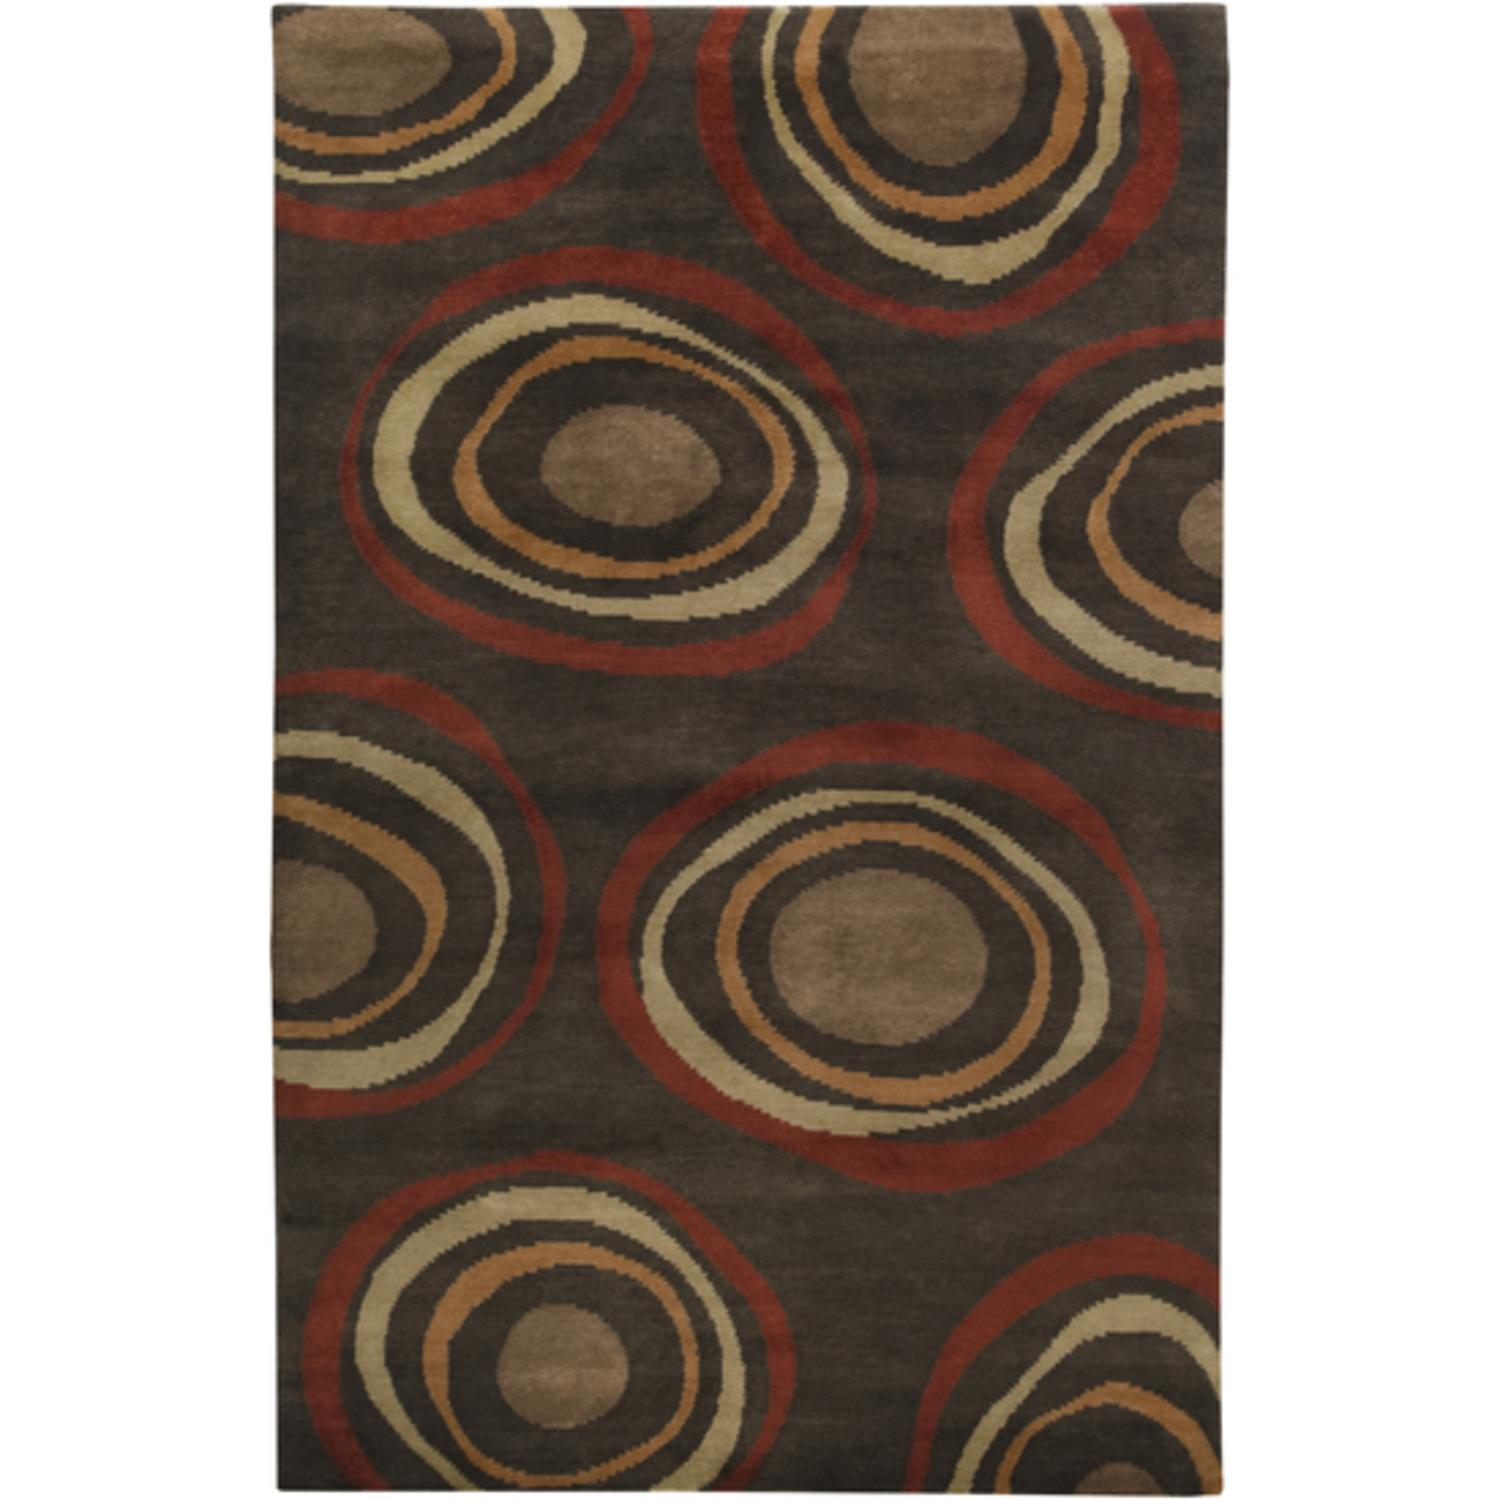 8' x 11' Circular Orbits Safari Tan and Dark Brown Wool Area Throw Rug